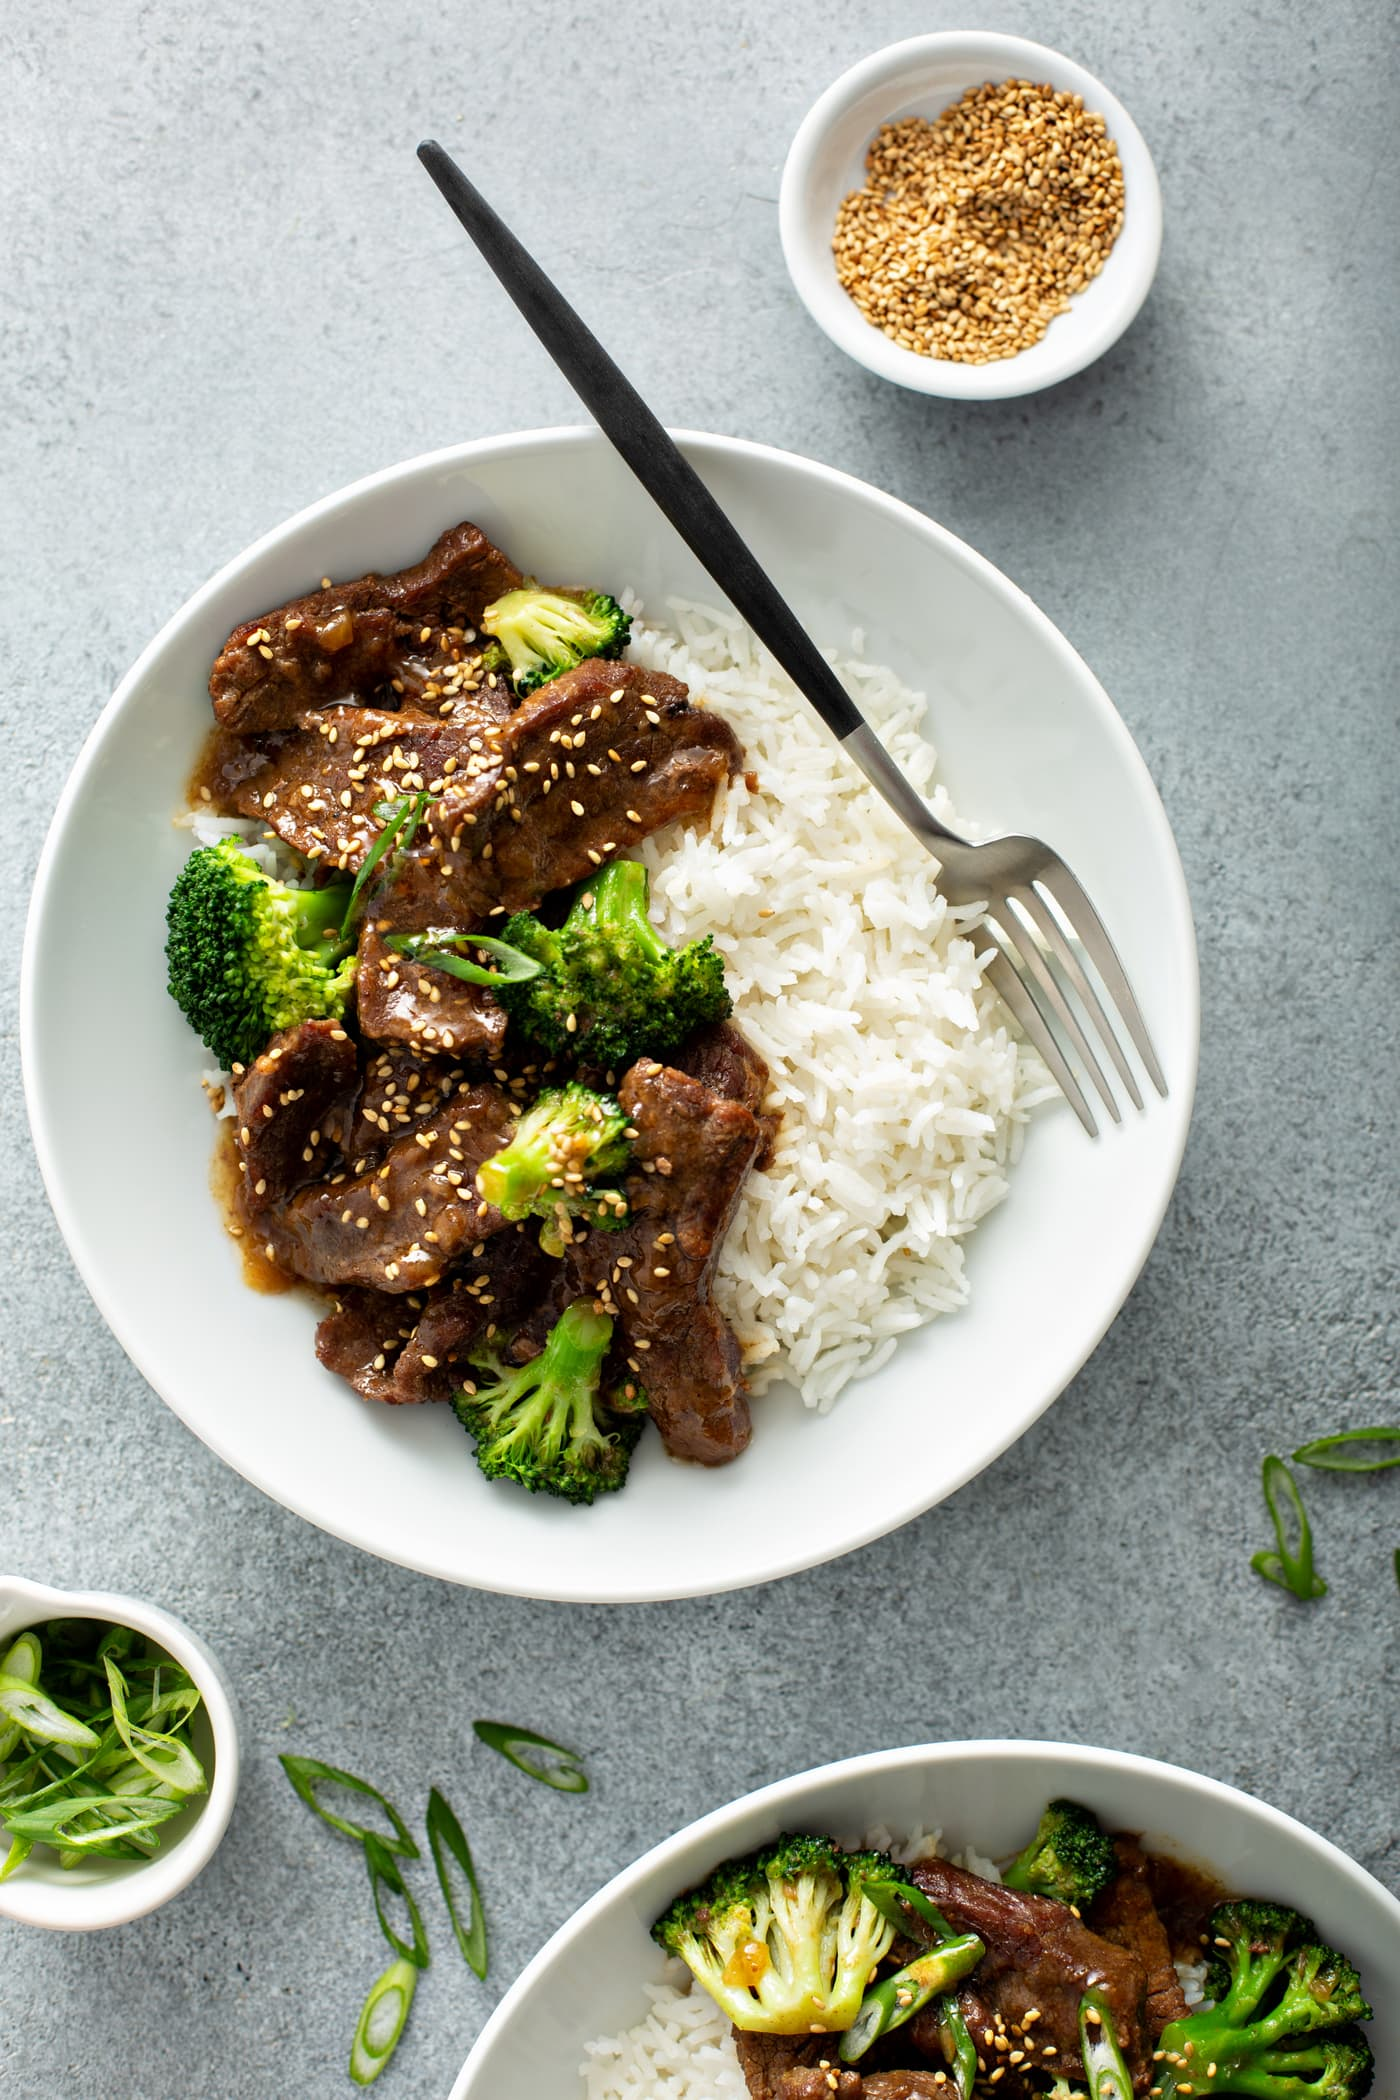 A photo of a white bowl with a serving of beef and broccoli in it along side some white rice. There is also a small dish of toasted sesame seeds next to the bowl.